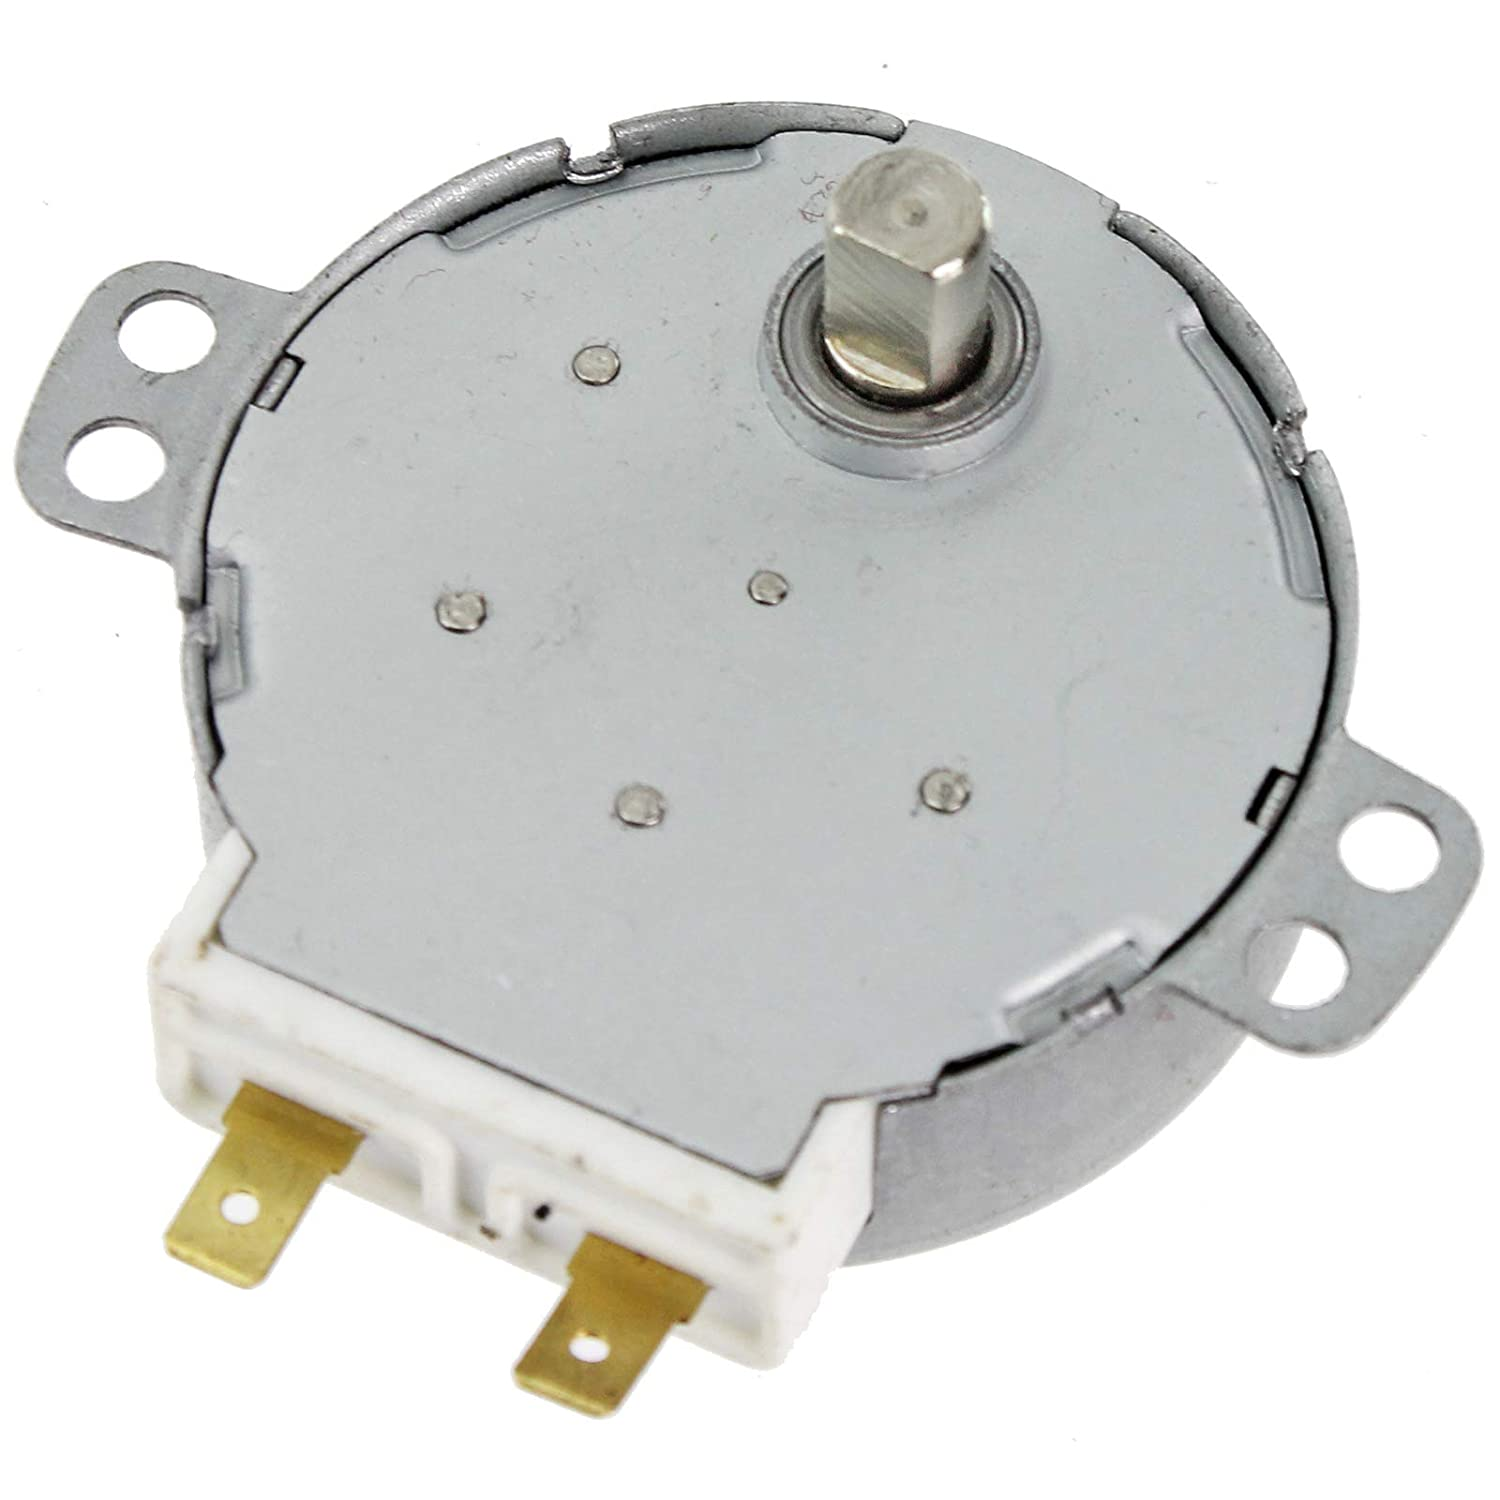 SPARES2GO Type TYJ50-8A7 Turntable Plate Motor for Breville Microwave